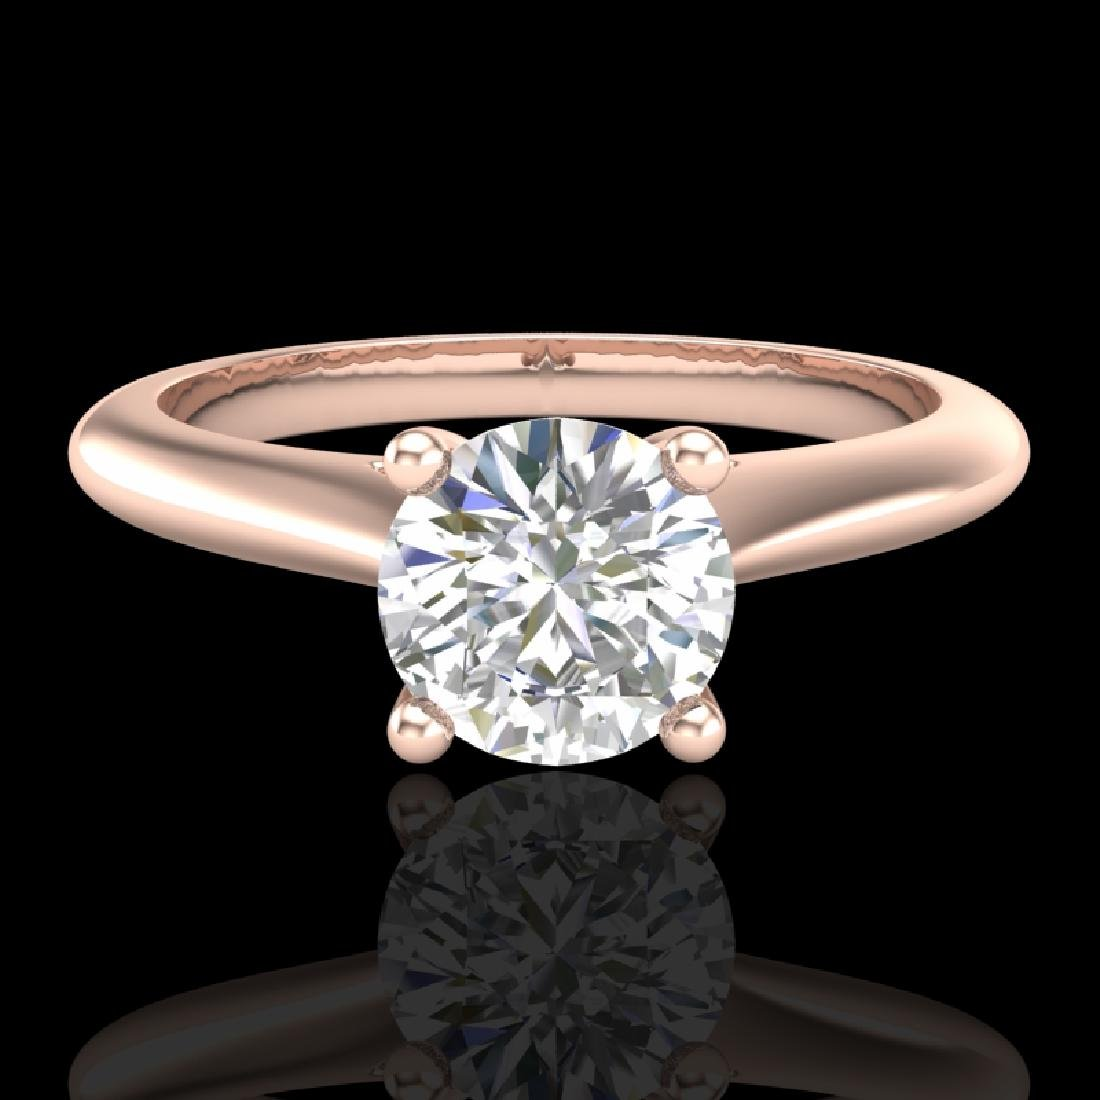 0.83 CTW VS/SI Diamond Solitaire Art Deco Ring 18K Rose - 2